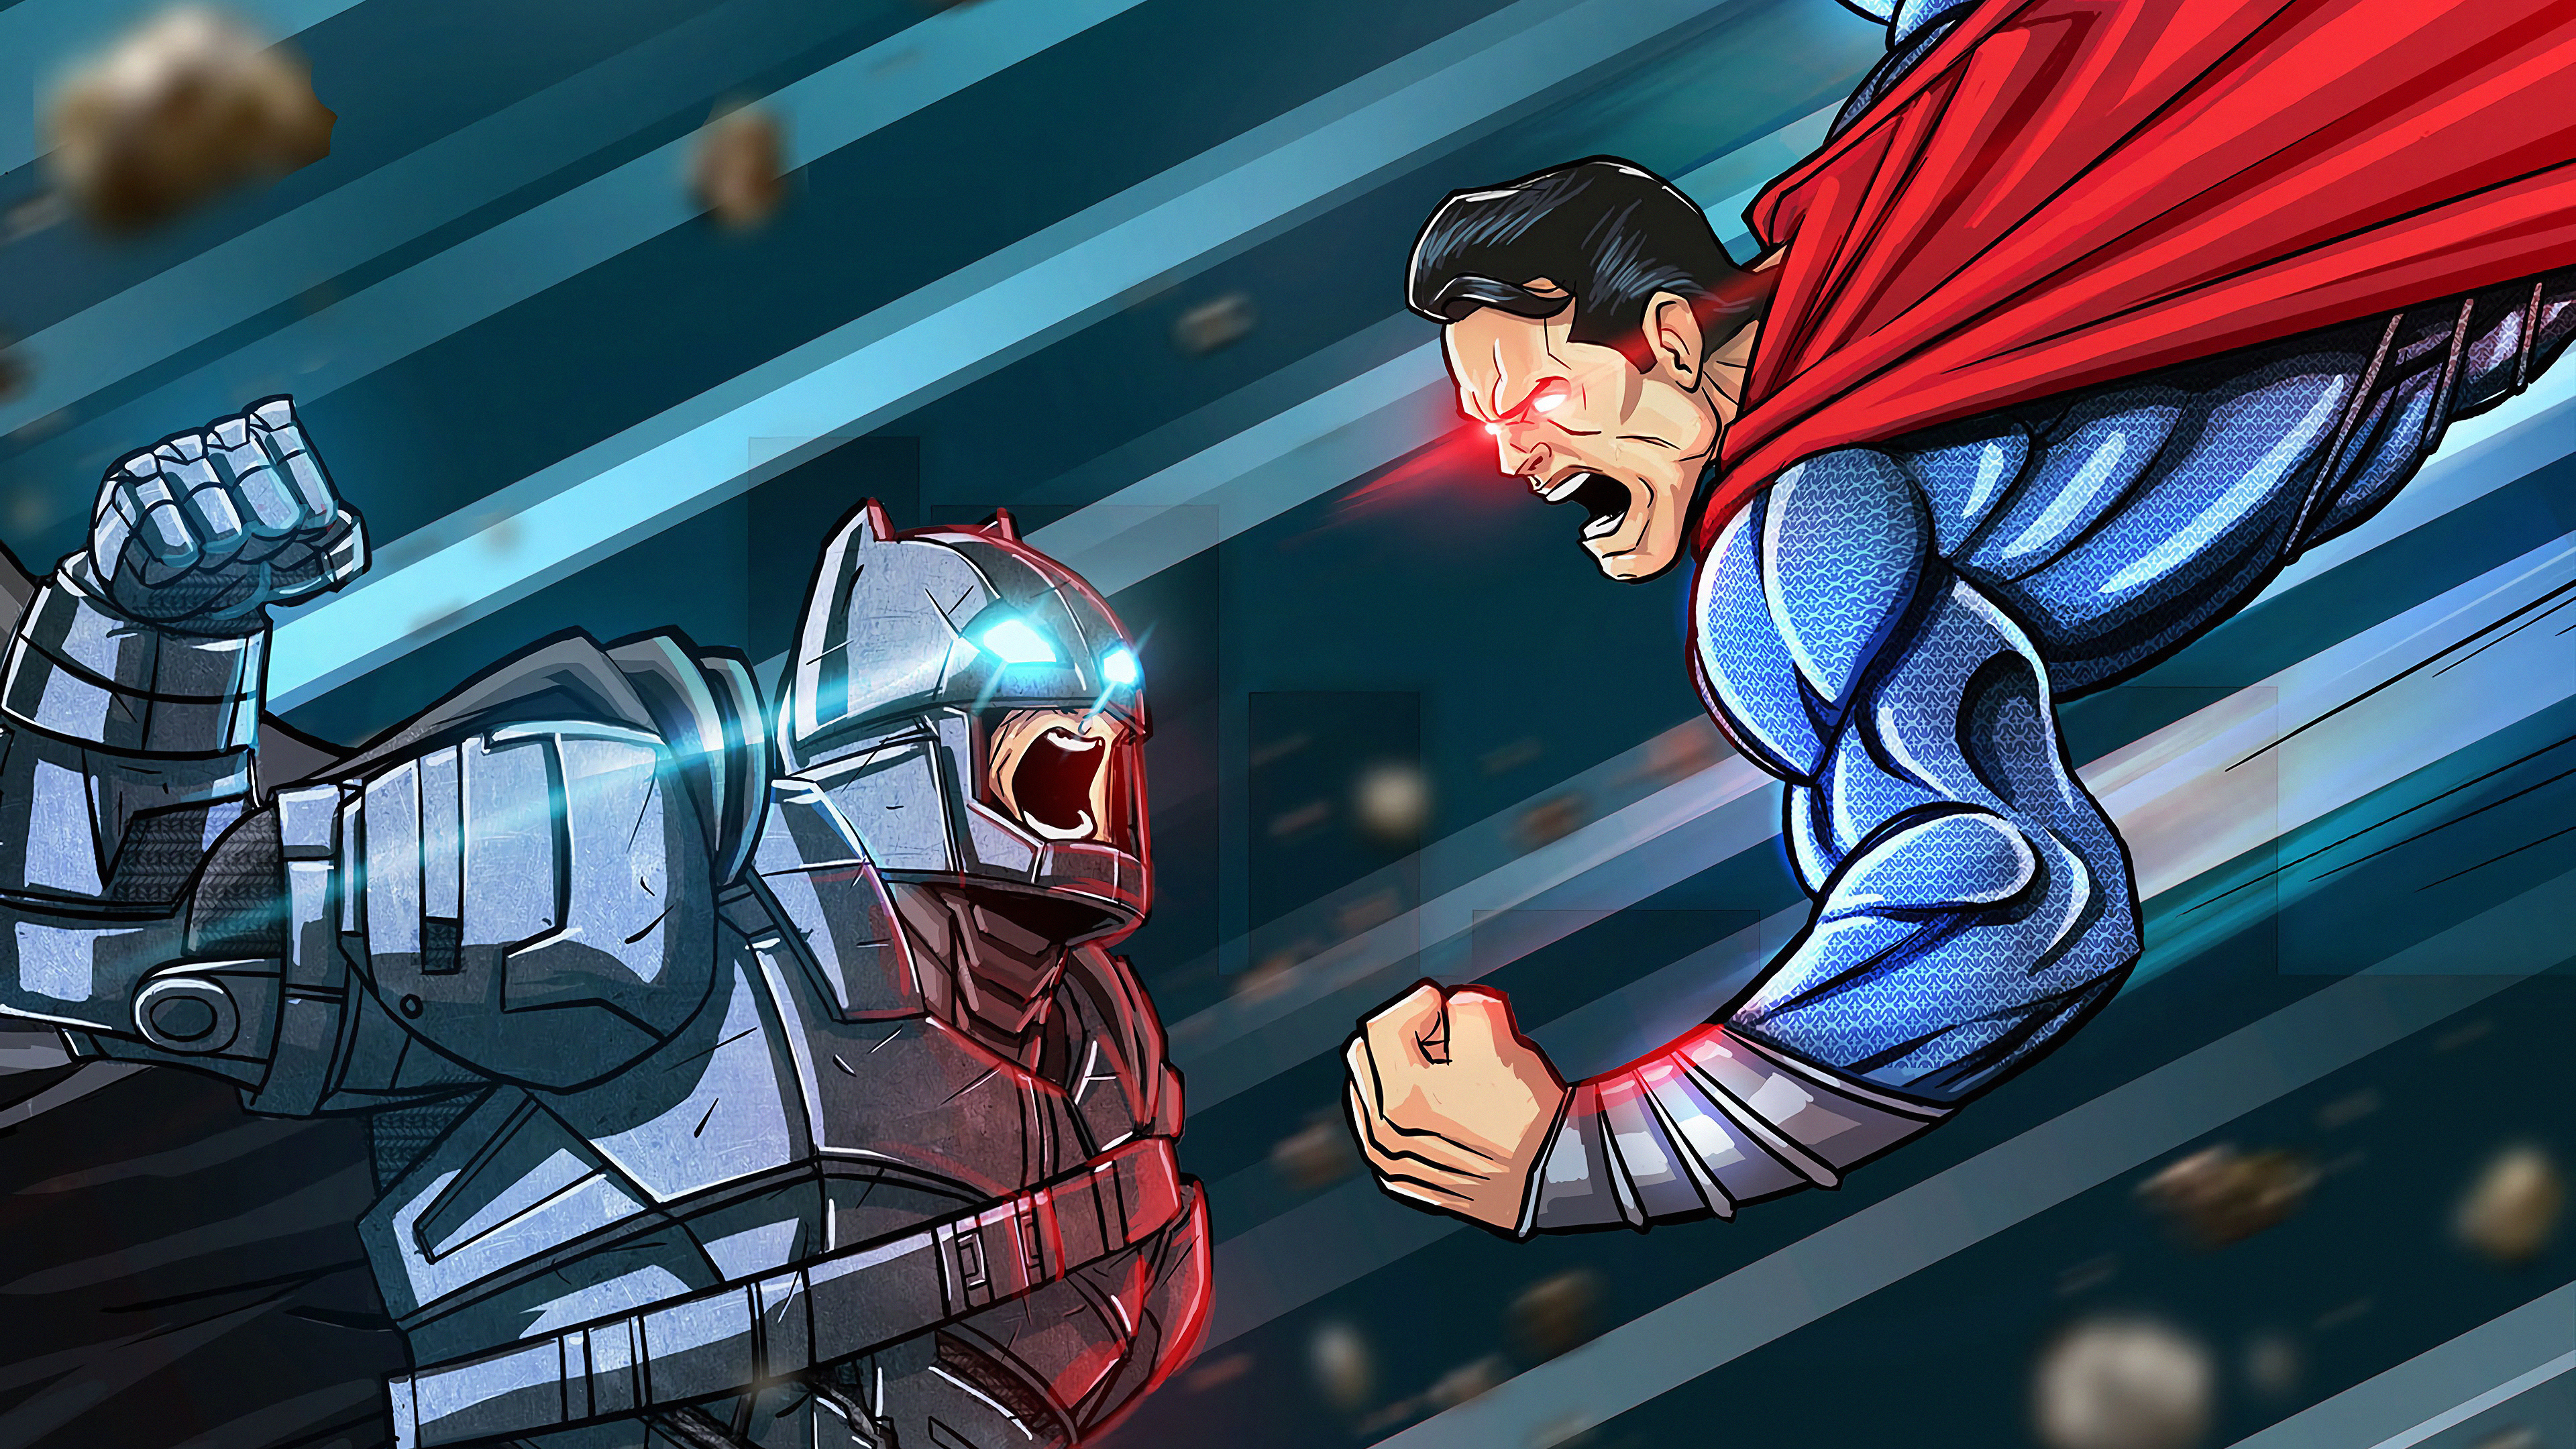 Wallpaper 4k Batman Vs Superman Art 4k Wallpapers Artwork